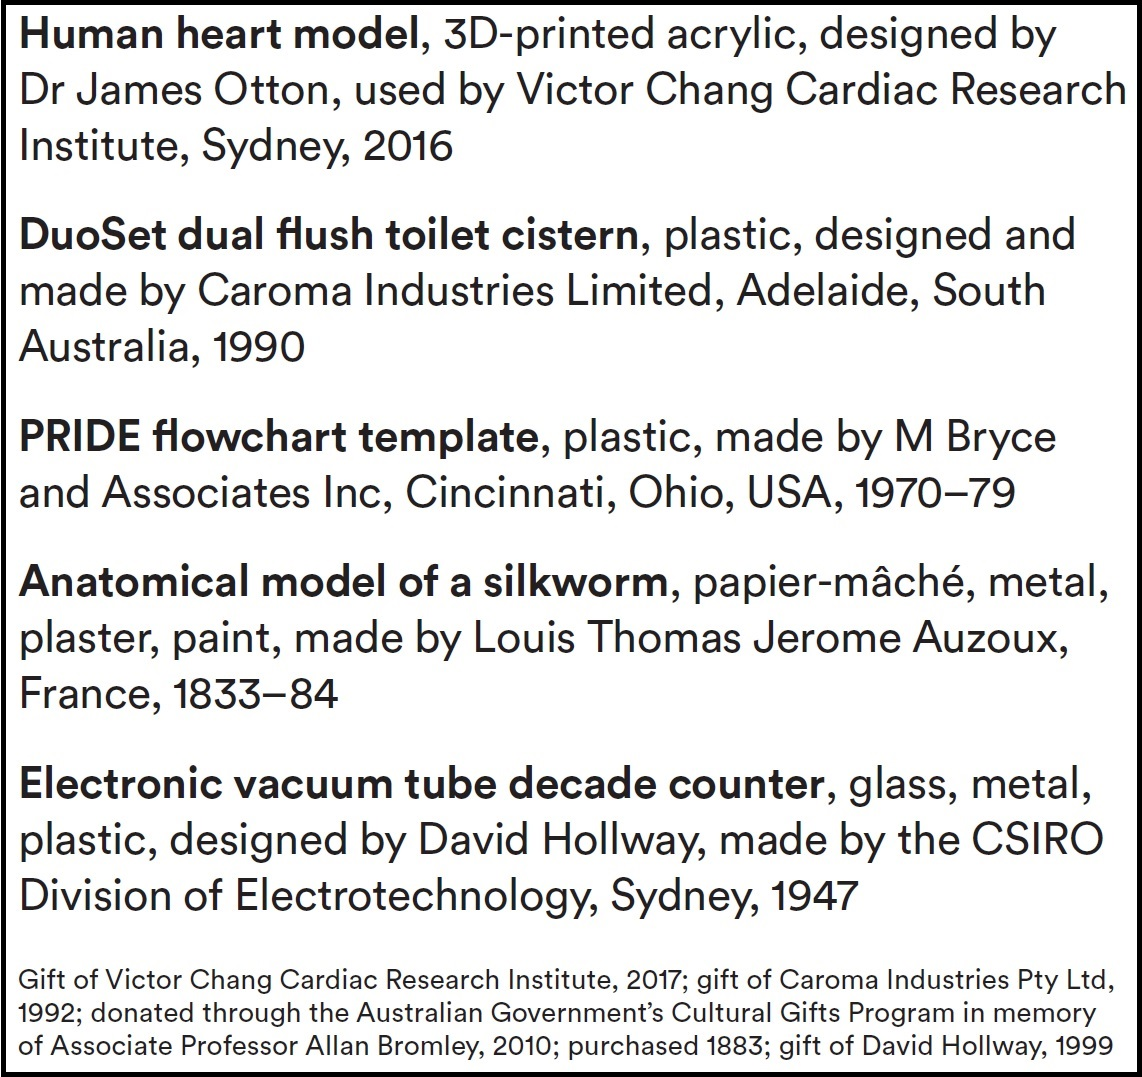 A screenshot of a sample of the object label listing report produced from the EMu collection database including the 3D printed human heart model, DuoSet dual flush toilet, PRIDE flowcharting template, anatomical model of a silkworm and electronic vacuum tube decade counter